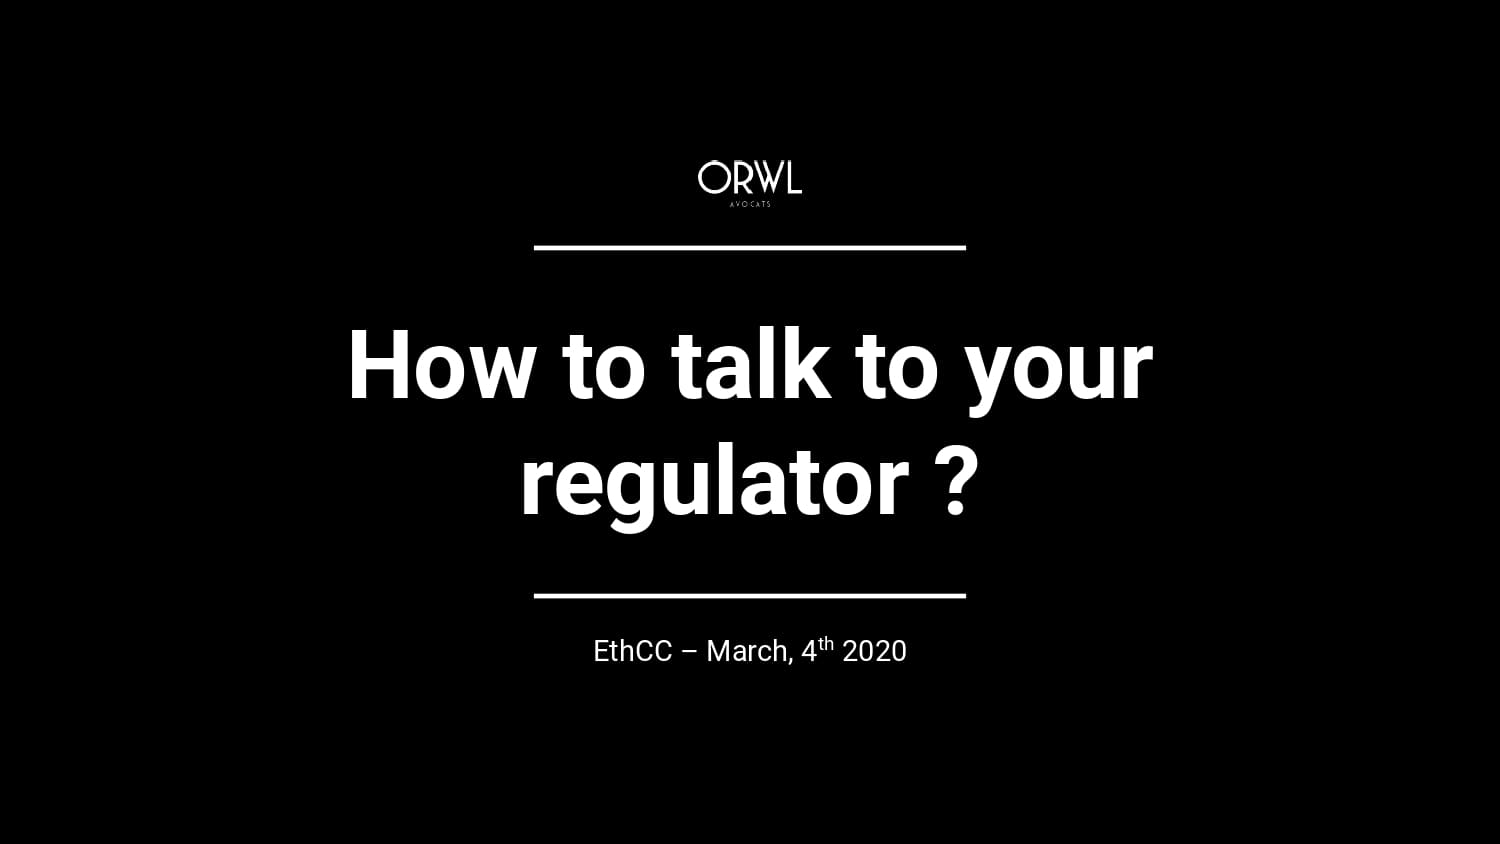 How to talk to a regulator?